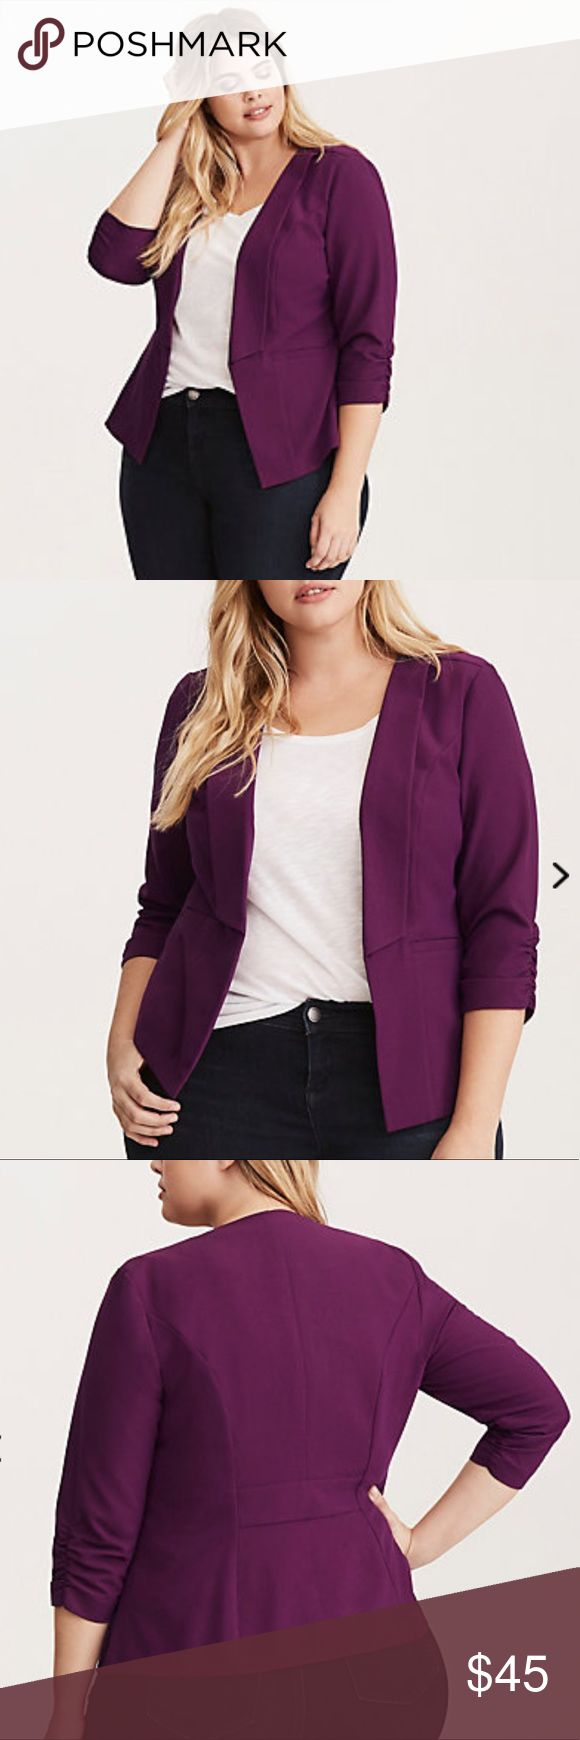 PLUS SIZE BLAZER - PURPLE - SIZE 2 TORRID Super cute and slimming plus size blazer that my mom only wore once or twice. Perfect condition, no flaws. From torrid. Size 2. I think that means 2x in their clothes. Please correct me if I'm wrong thanks. torrid Jackets & Coats Blazers